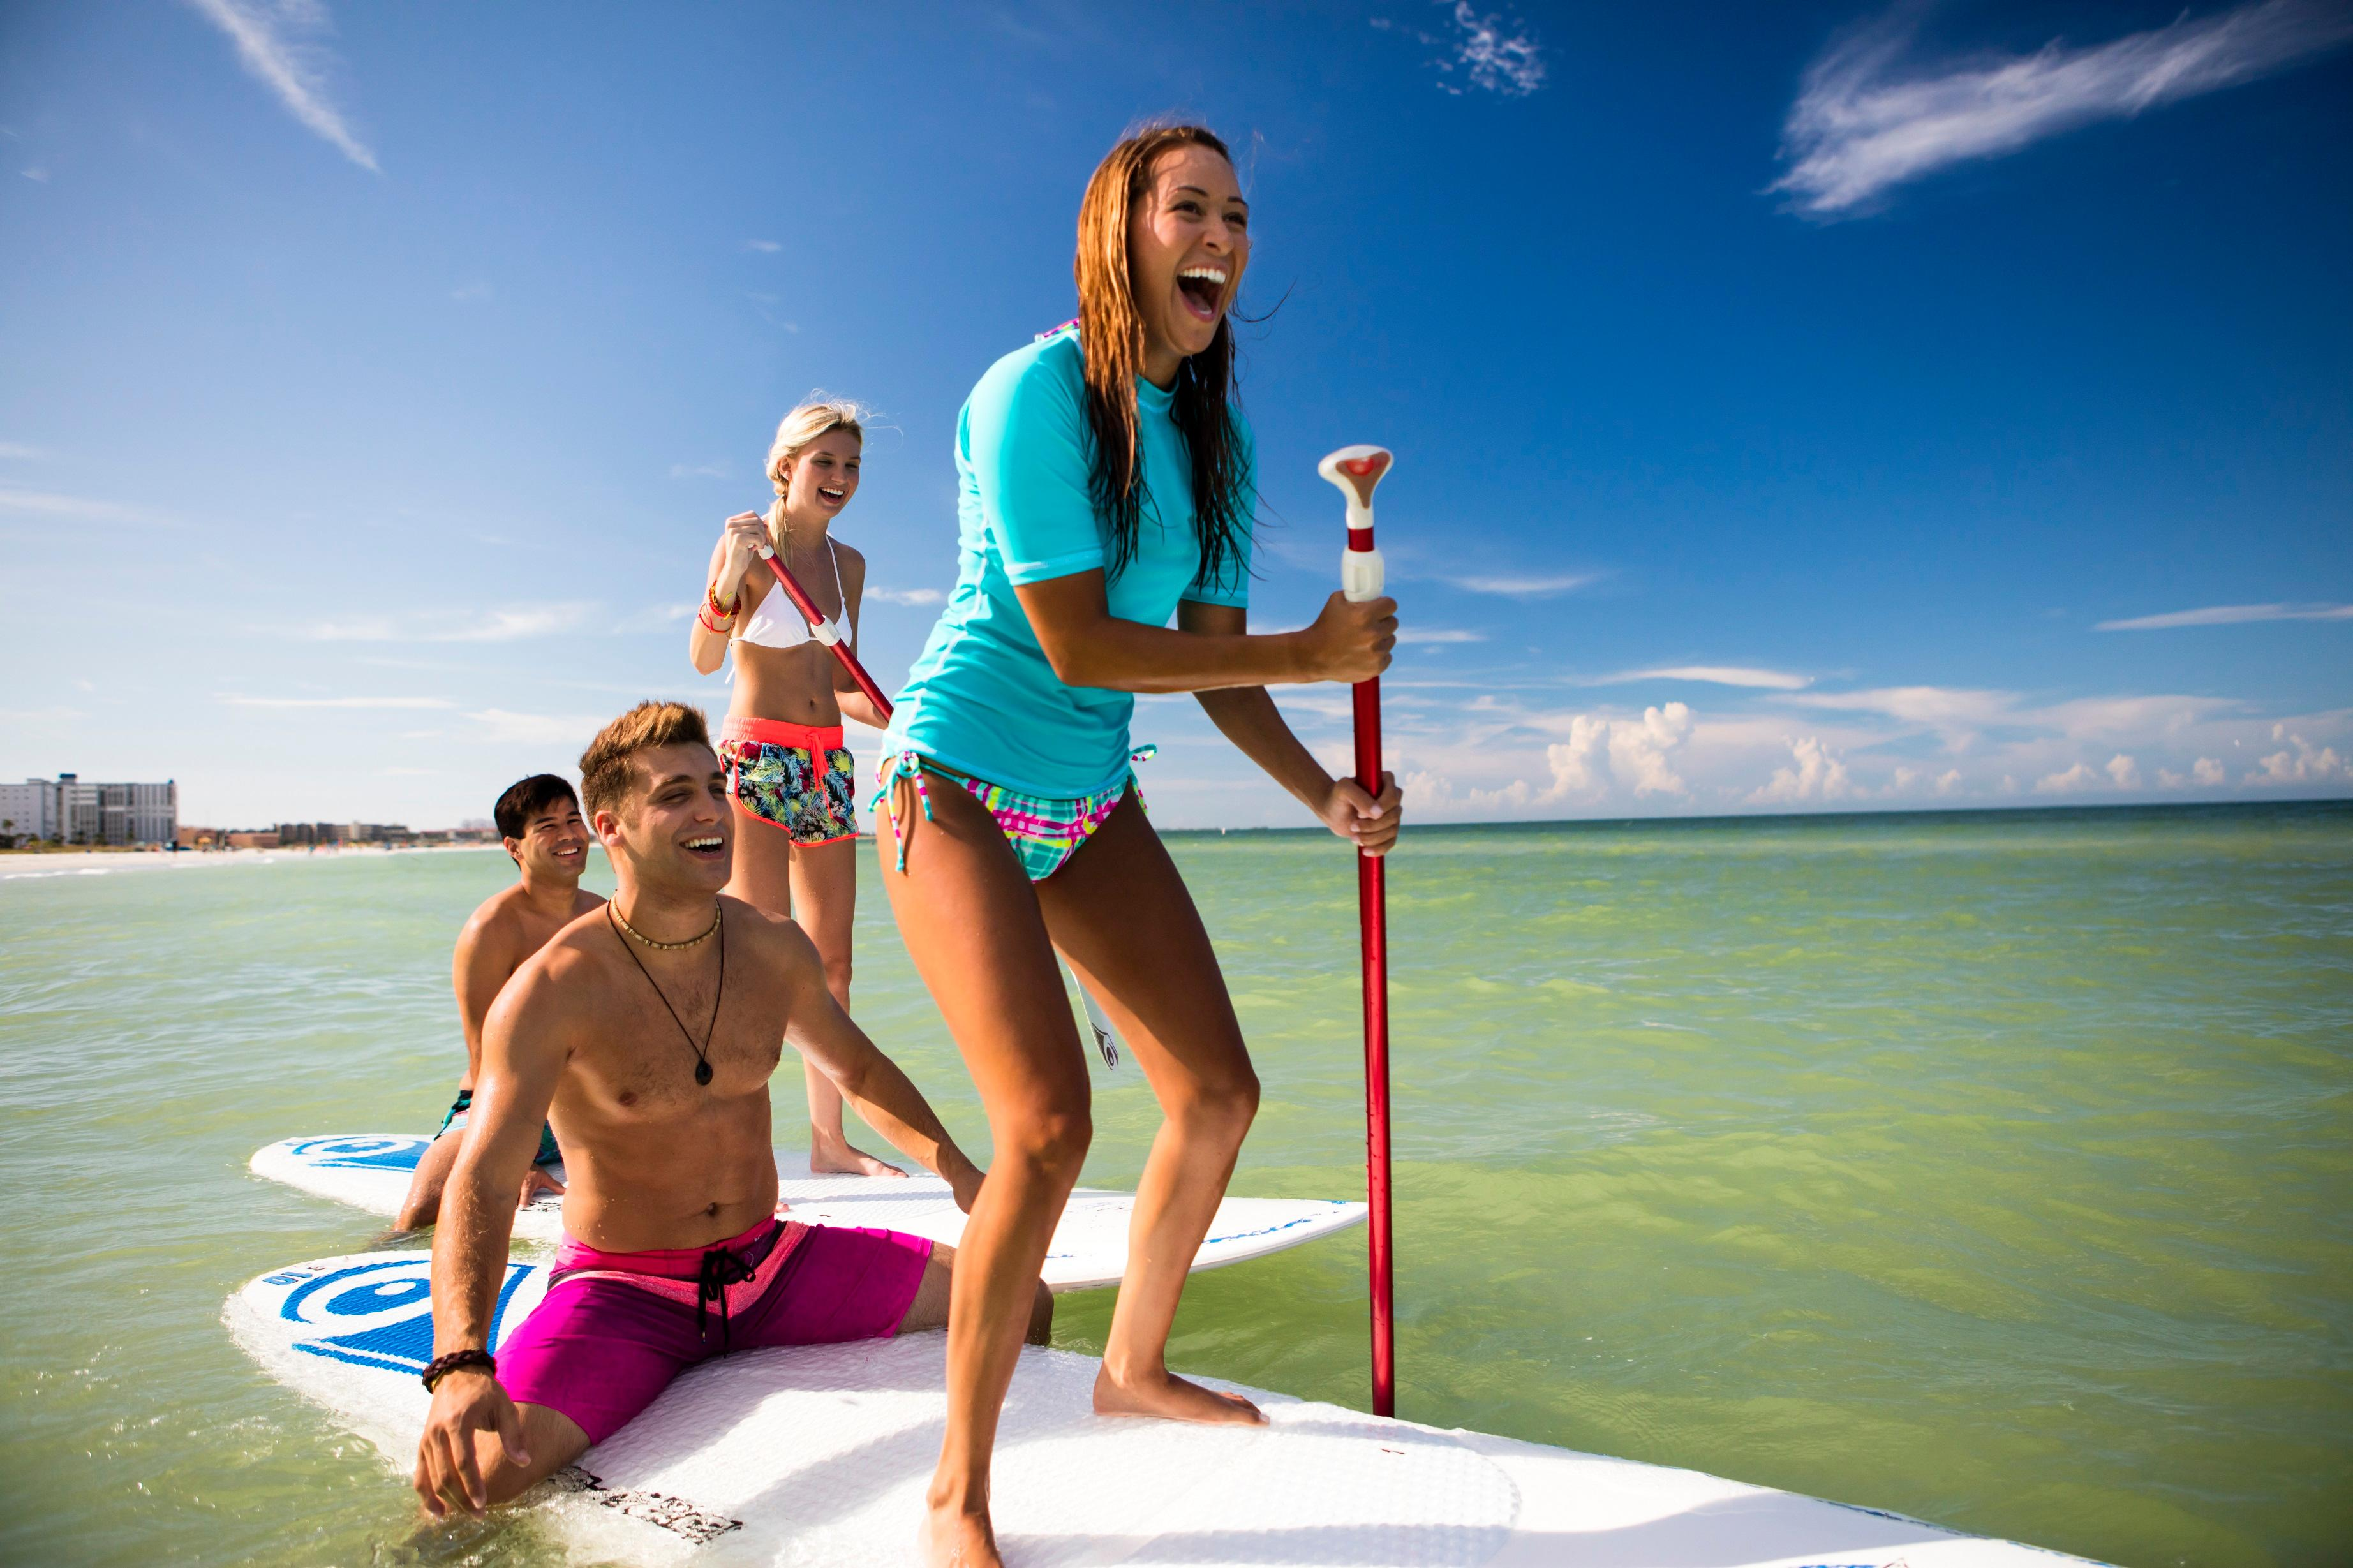 Paddleboard rentals are available.